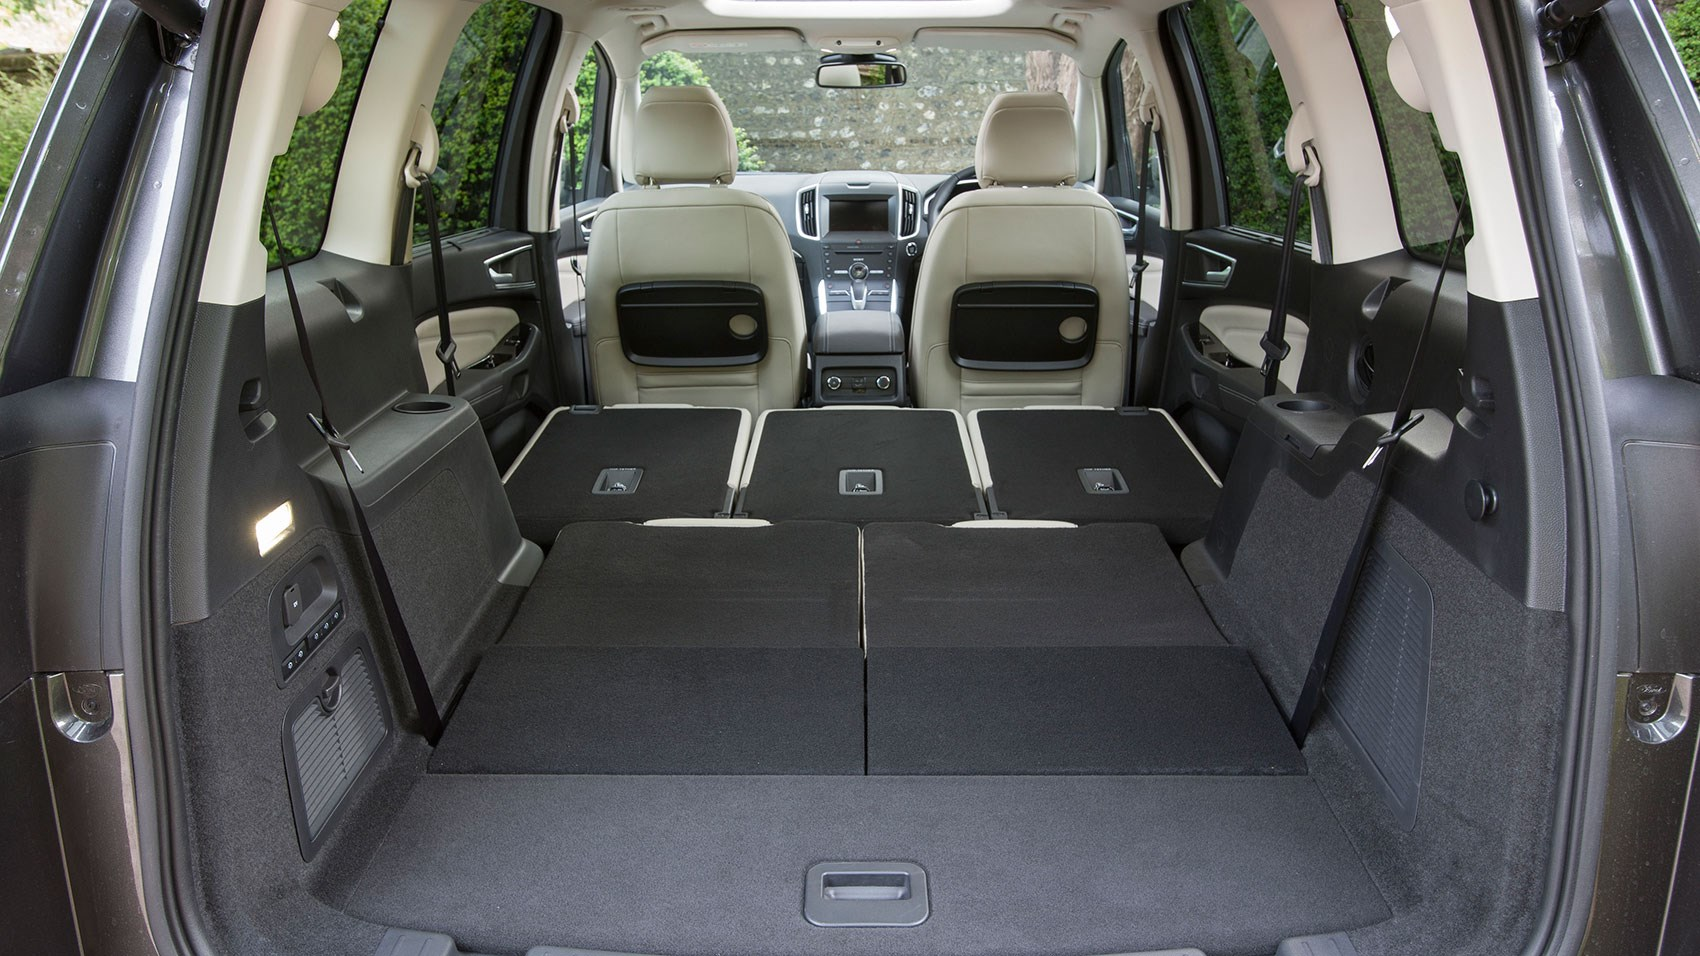 ford galaxy yep you ll get the whole family clobber in the galaxy s boot